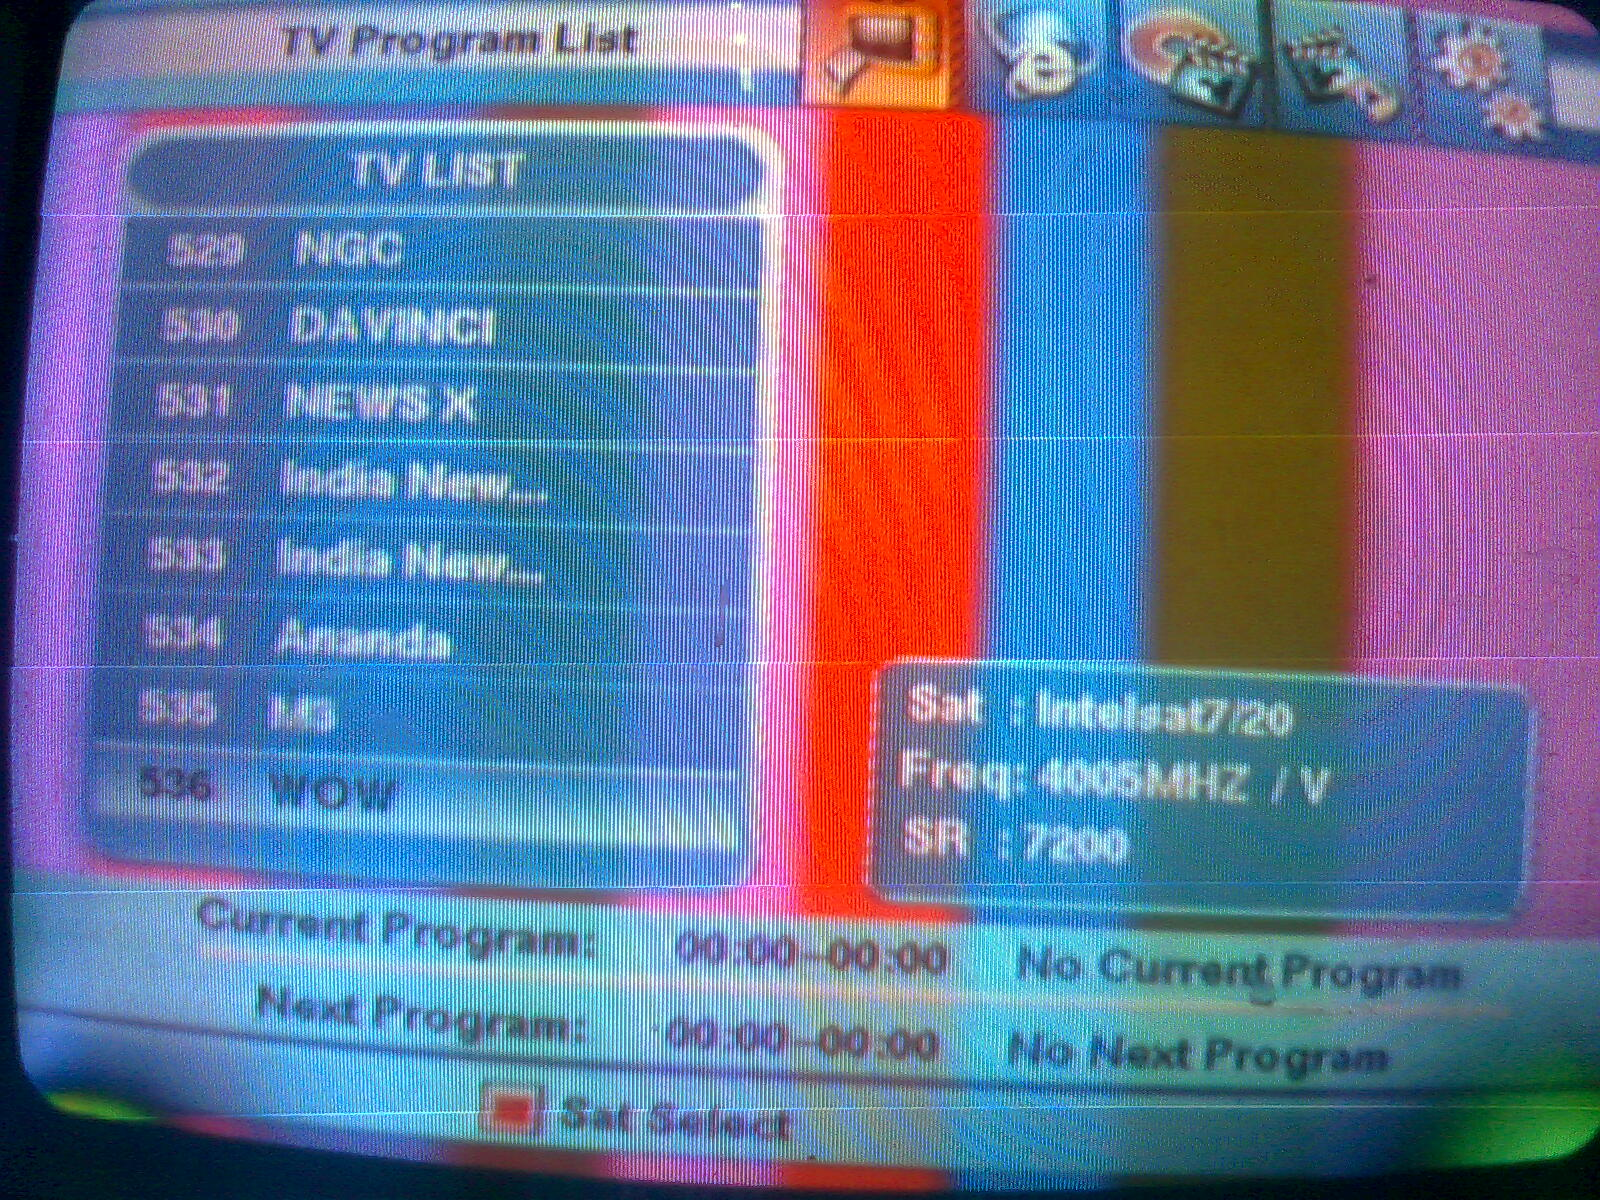 GUNA SAT TAMIL: Wow TV, Life Style Asia and Holidayz now